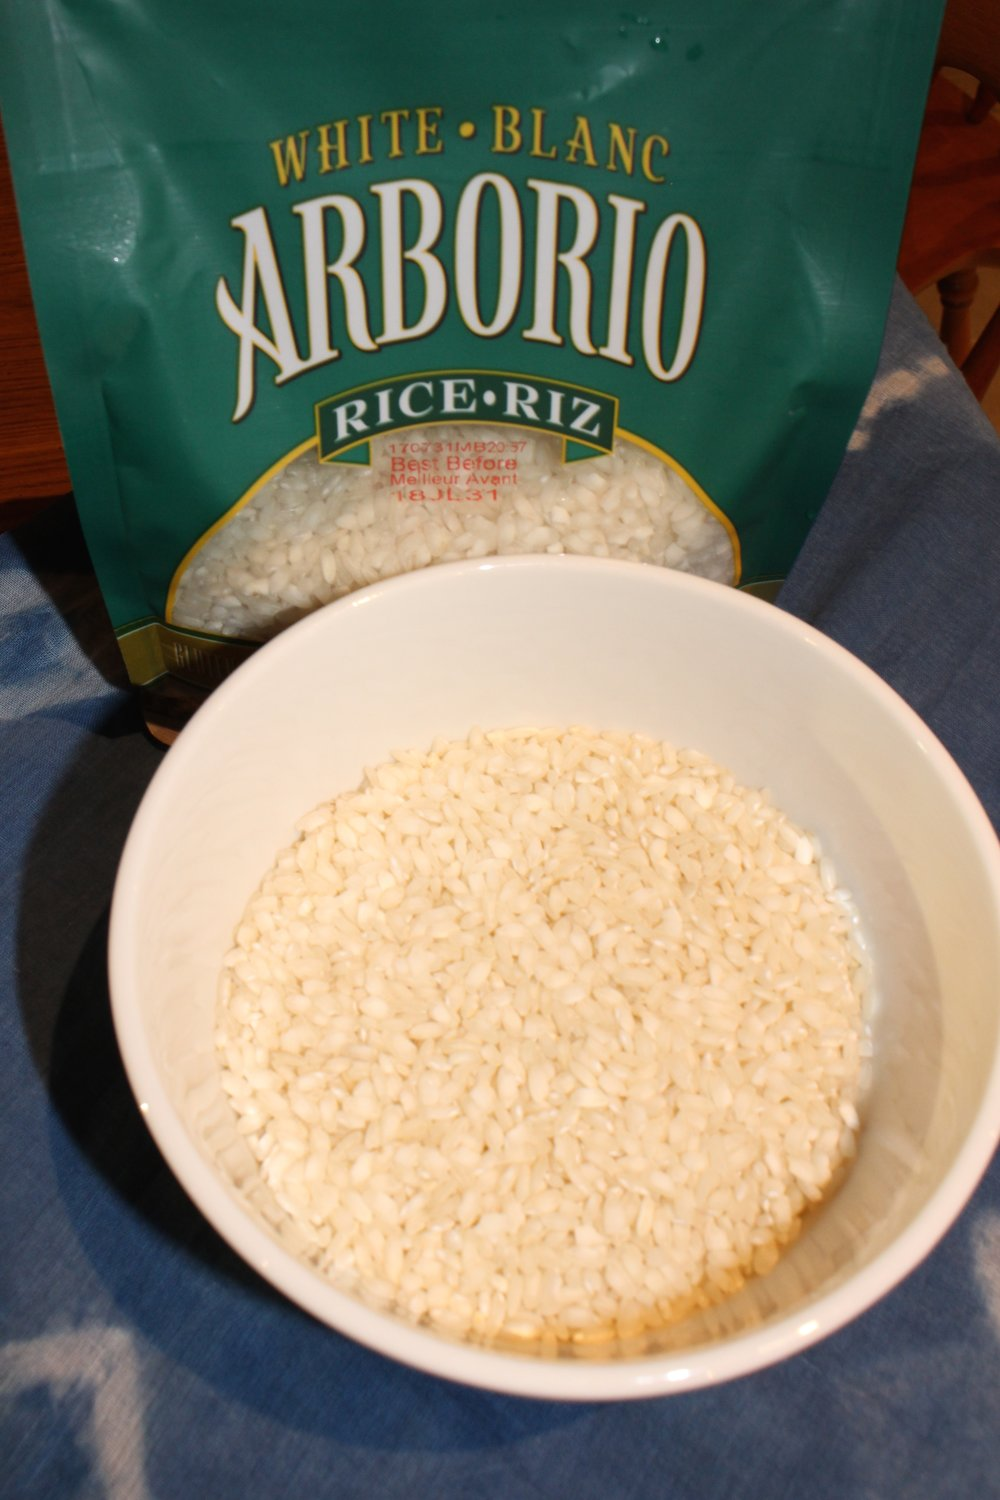 Arborio rice is the best to use for risotto